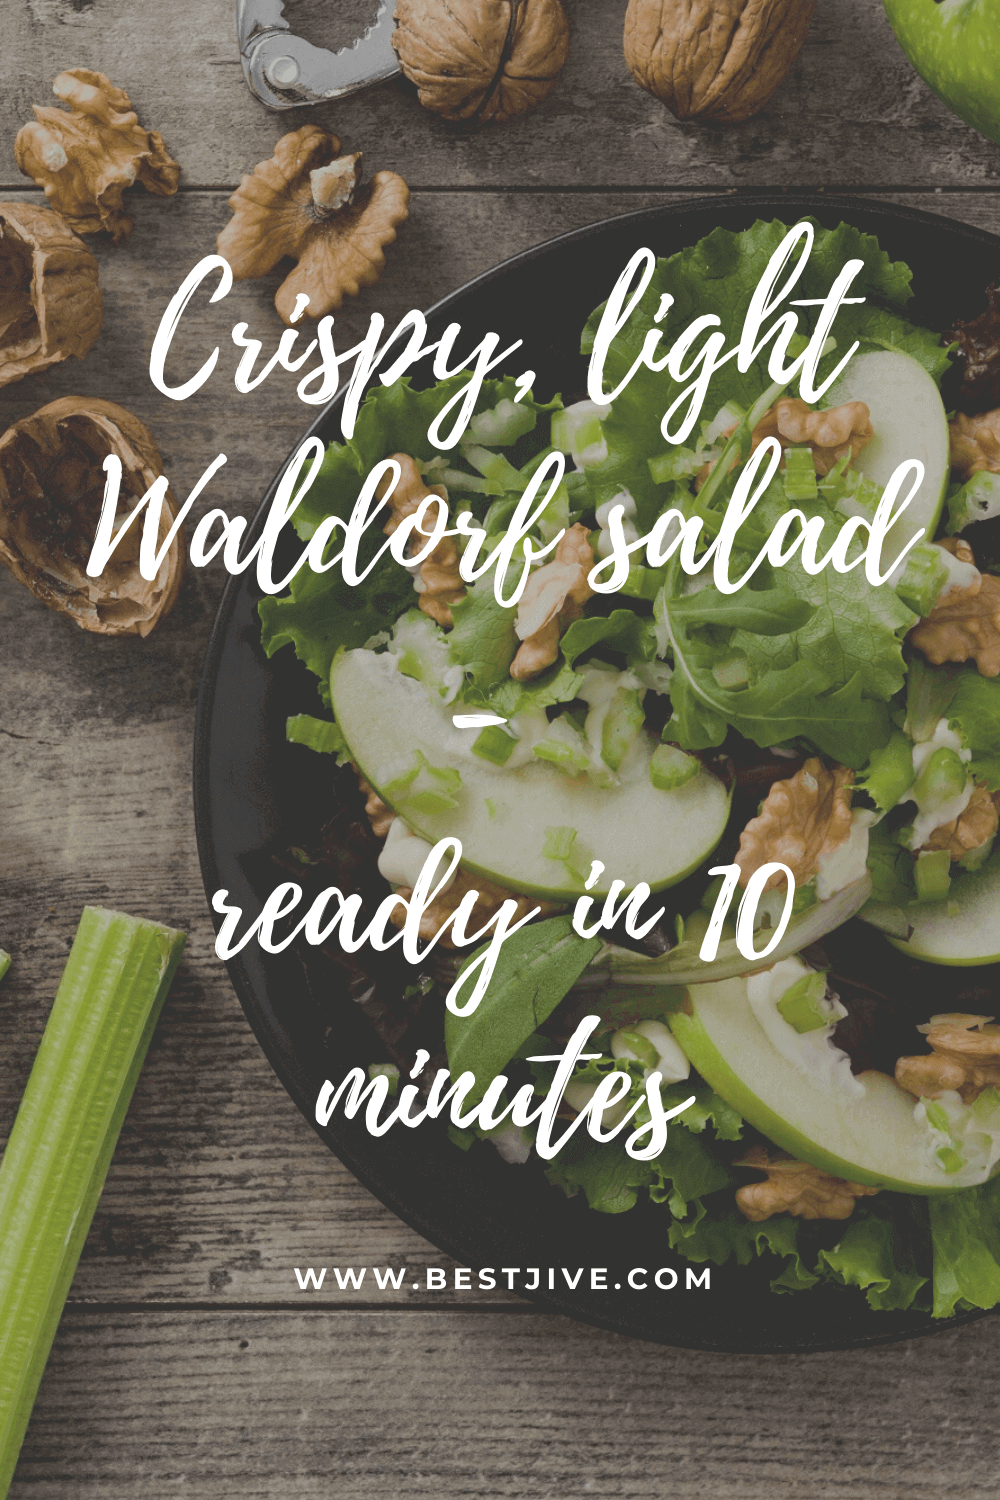 Crispy, light Waldorf salad with apples and lots of nuts: a lunch ready in 10 minutes